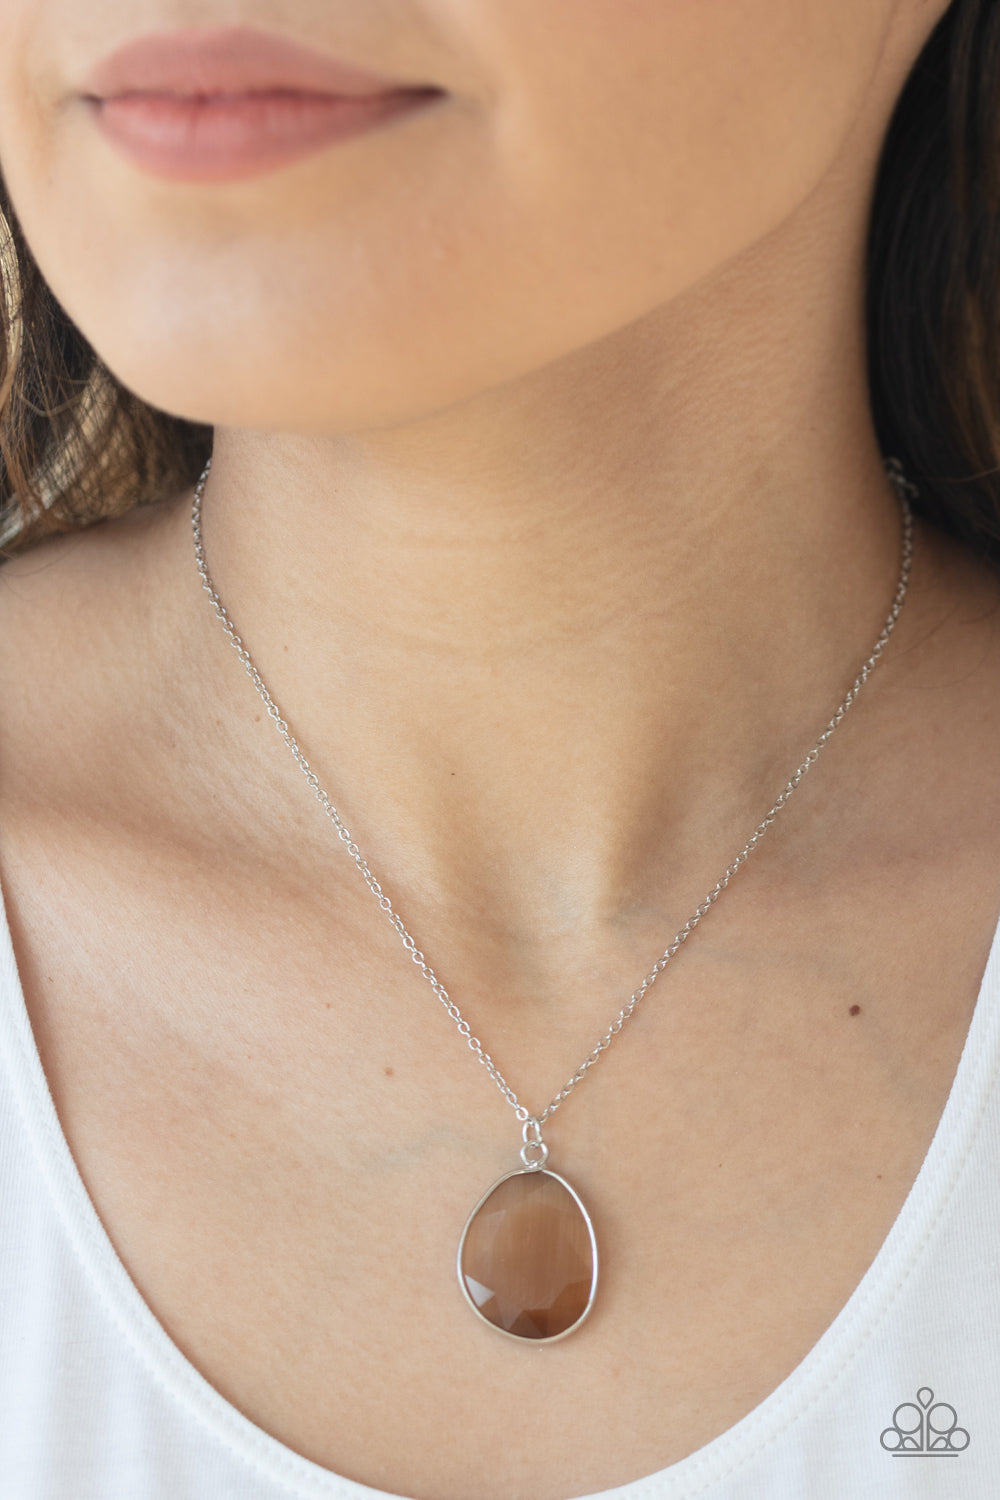 Icy Opalescence - Brown Necklace